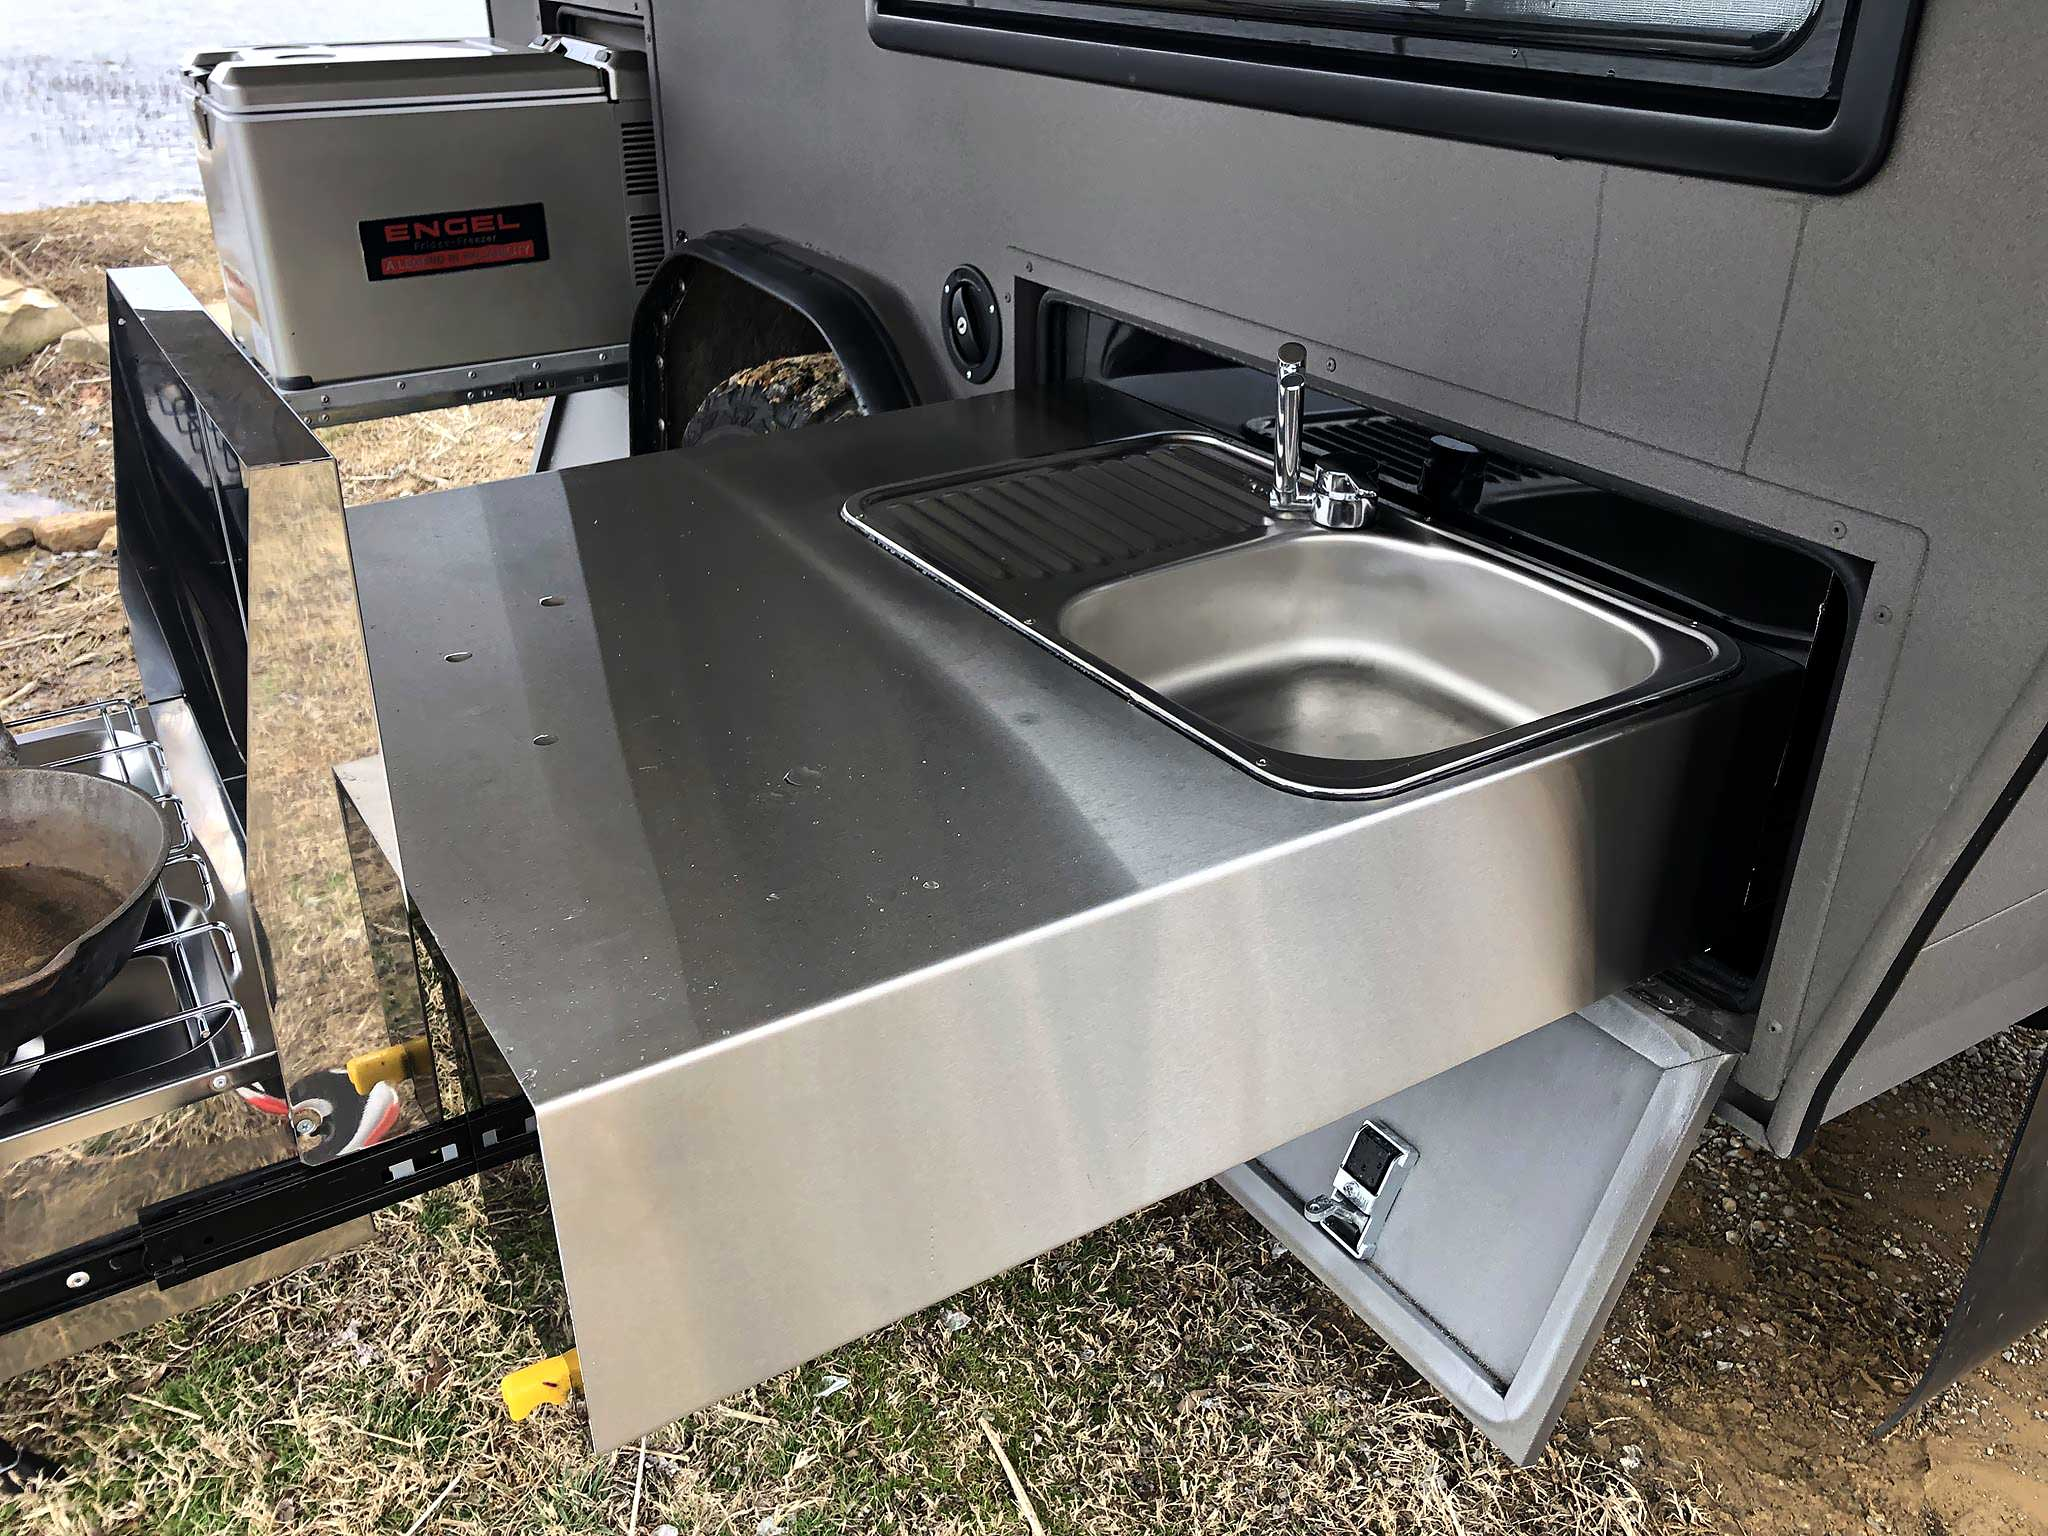 offroad-rv-overland-campers-sniperx-sink-fridge.jpg